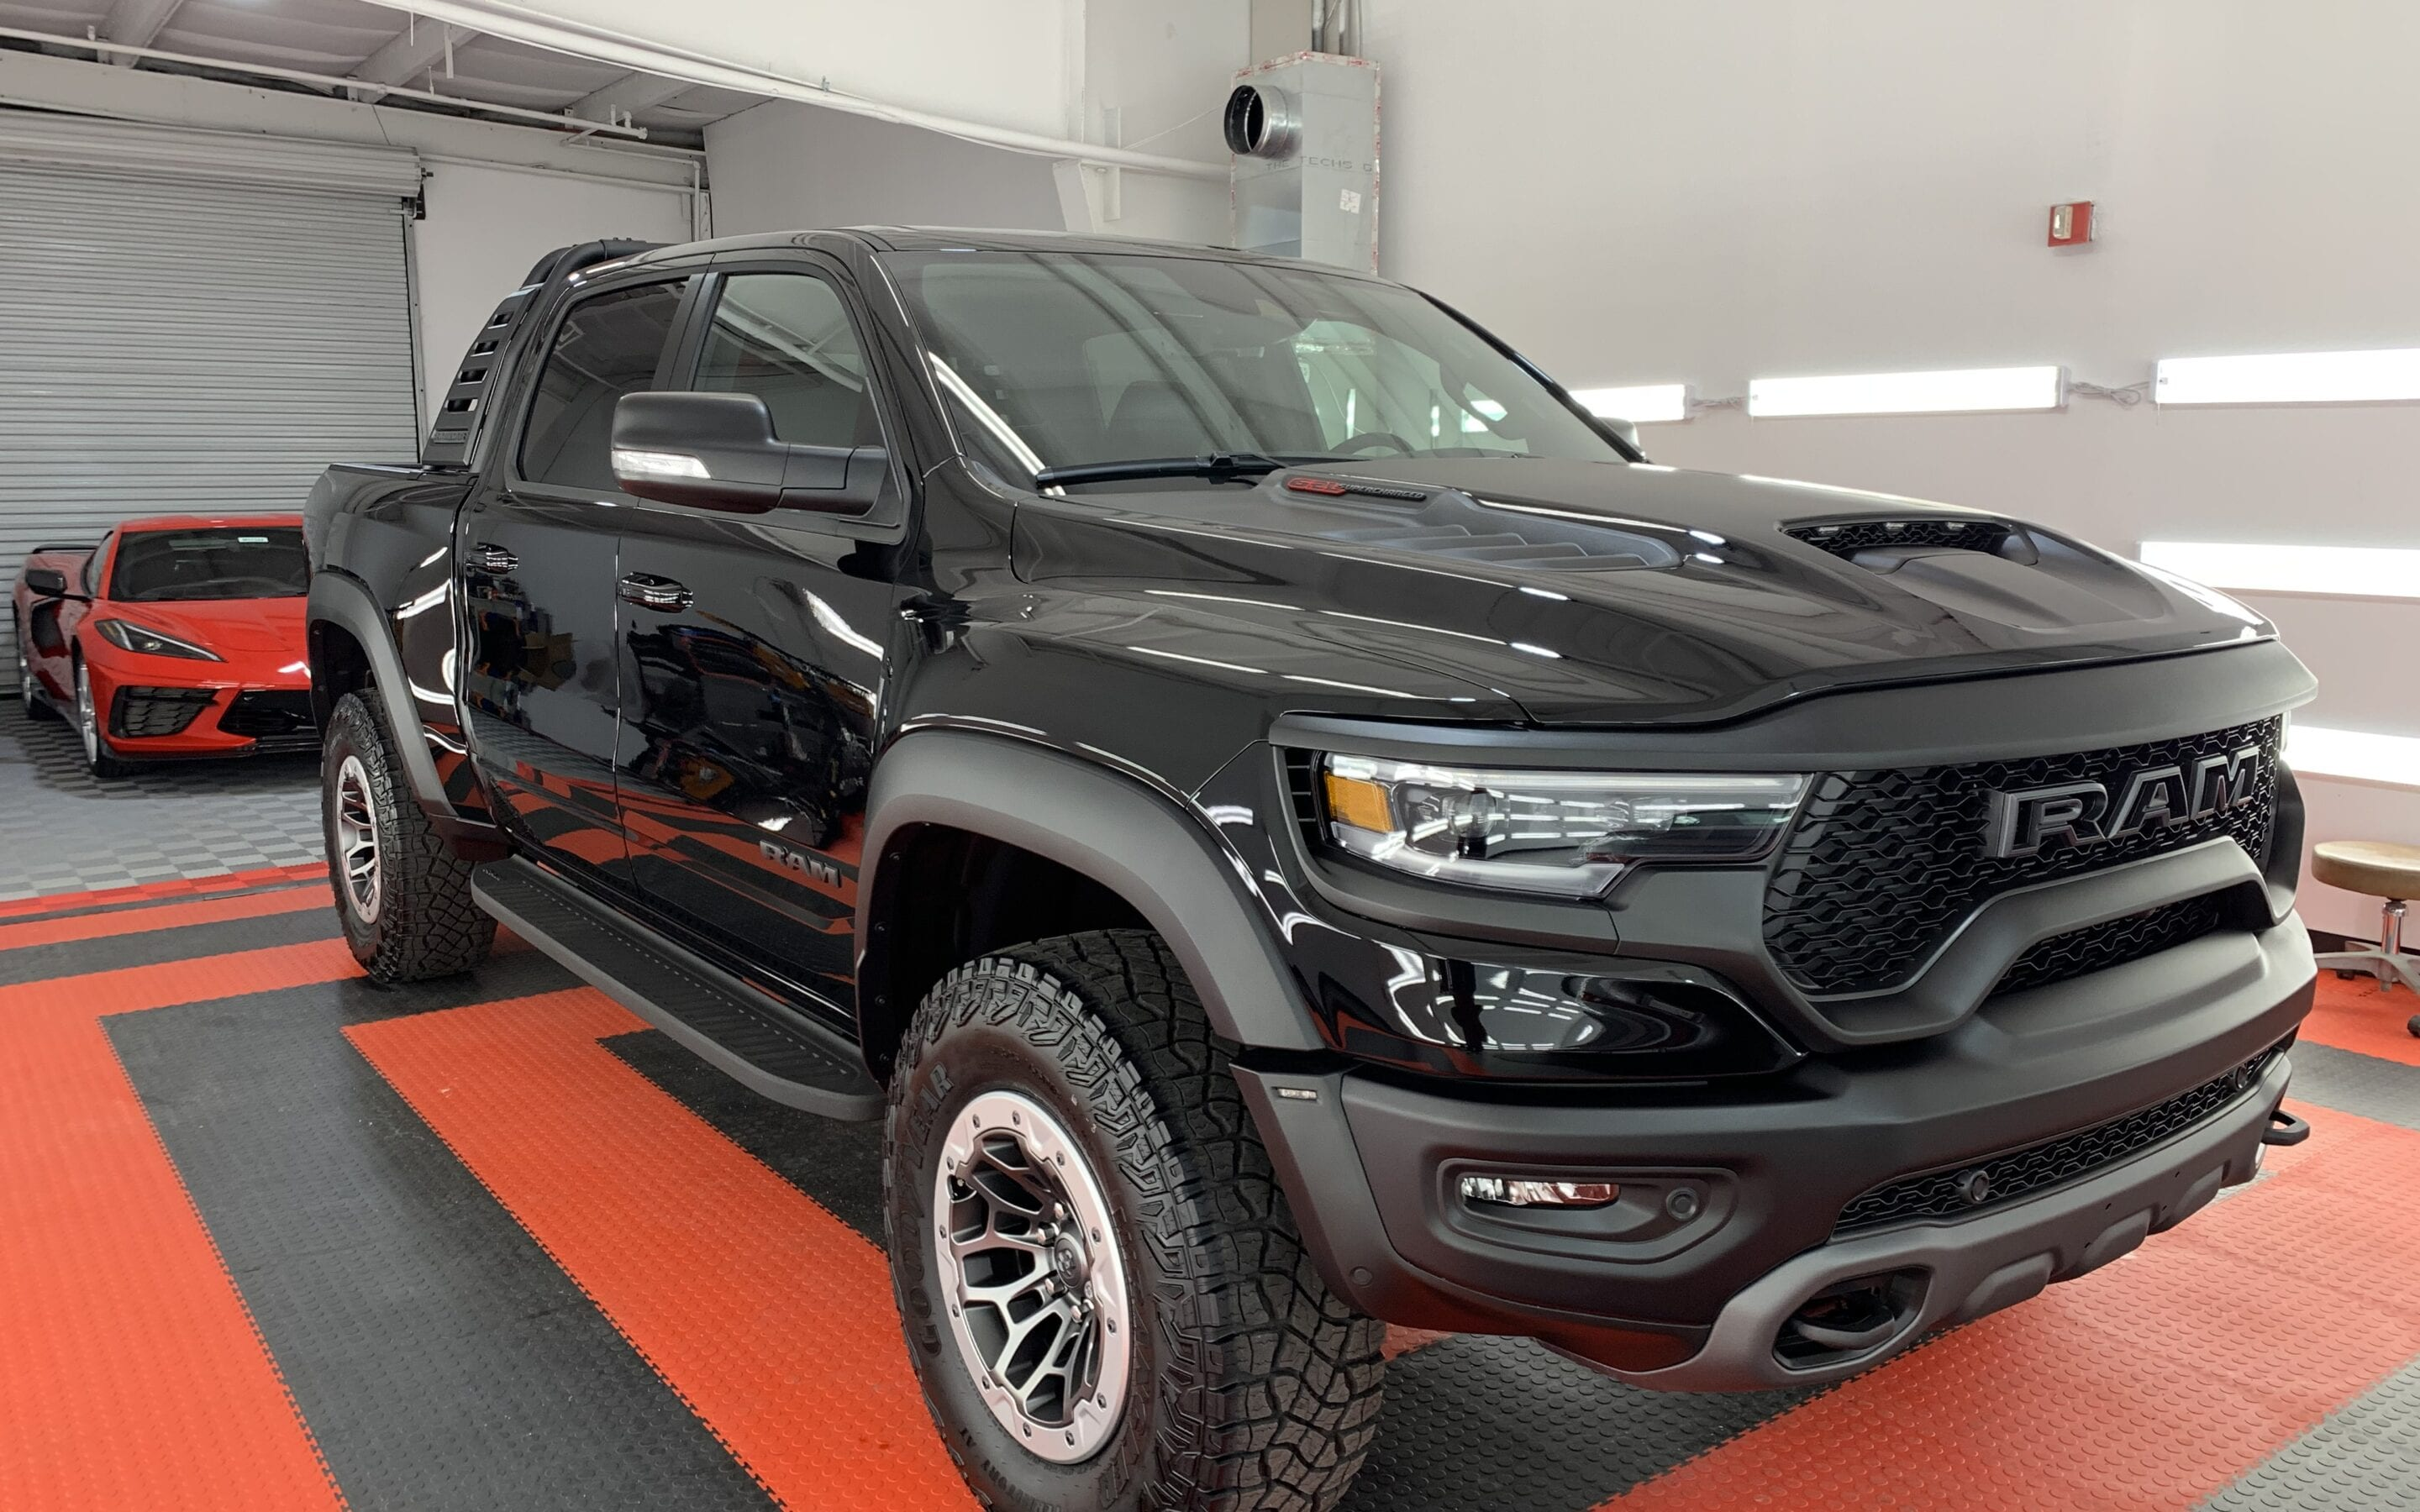 New Car Preparation of a 2021 Dodge Ram TRX